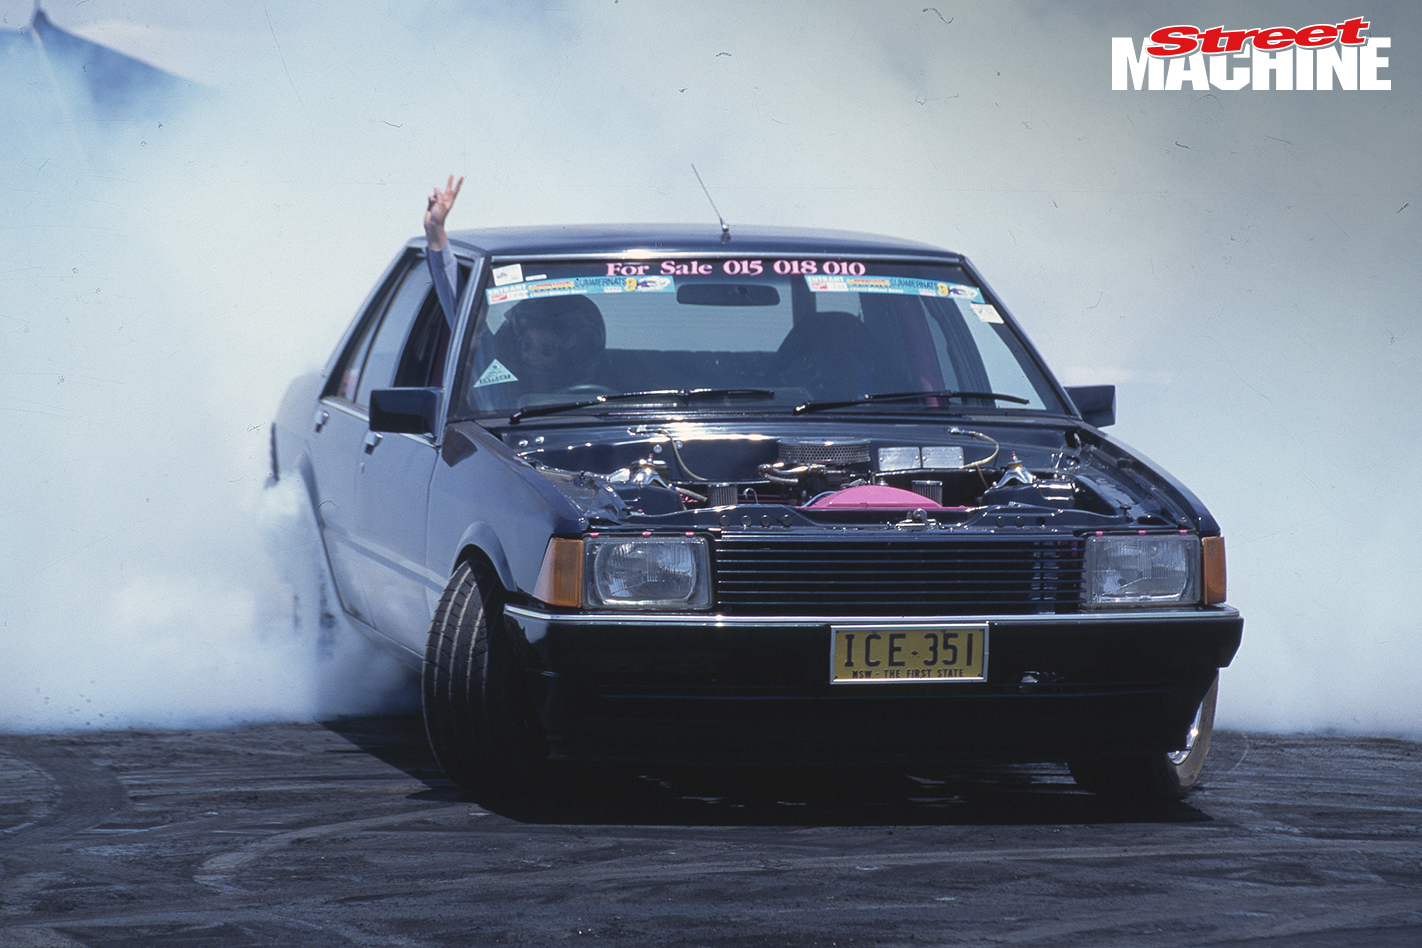 4 Ford Falcon Burnout ICE351